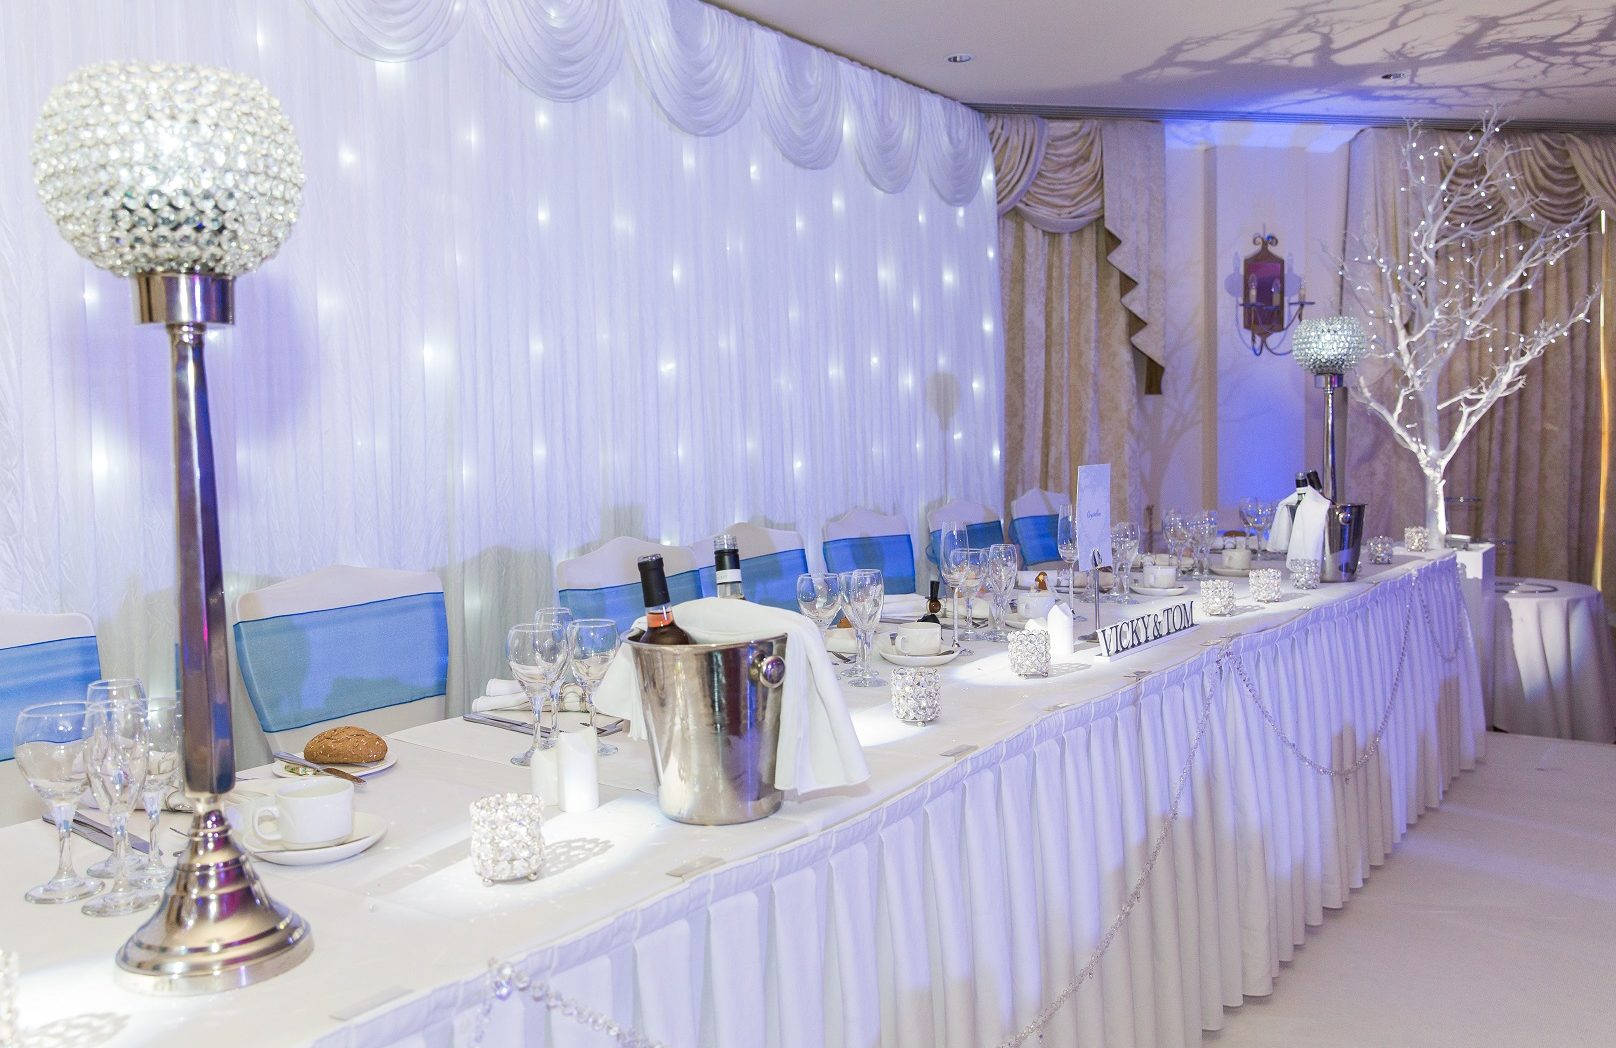 A winter wedding table setting with sparkling decorations